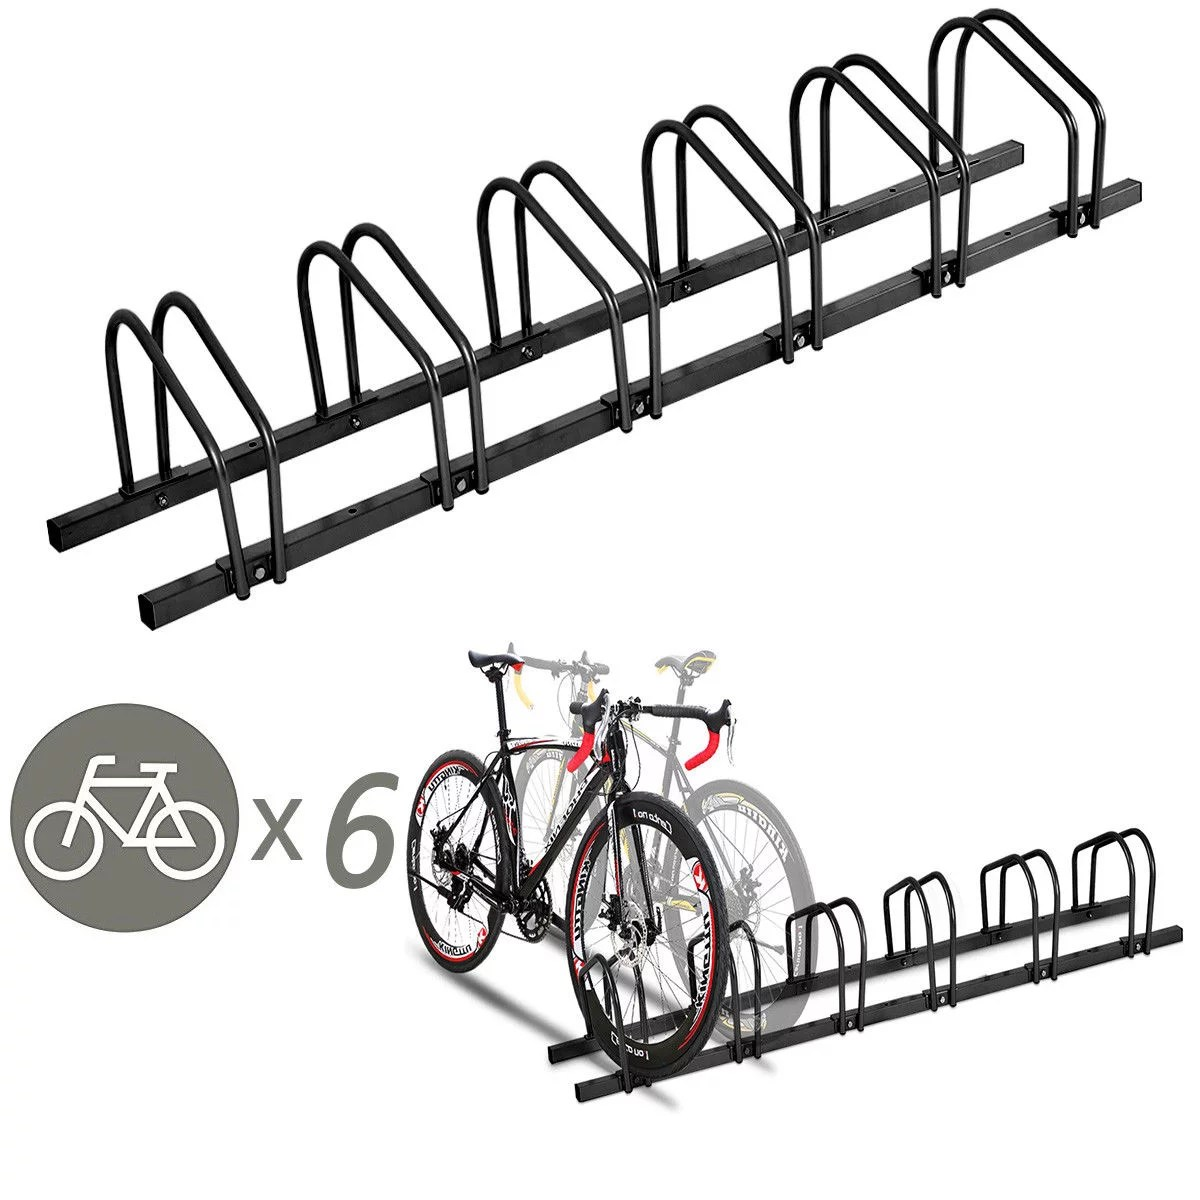 Parking Garage Bike Rack Gymax 6 Bike Bicycle Stand Parking Garage Storage Cycling Rack Black